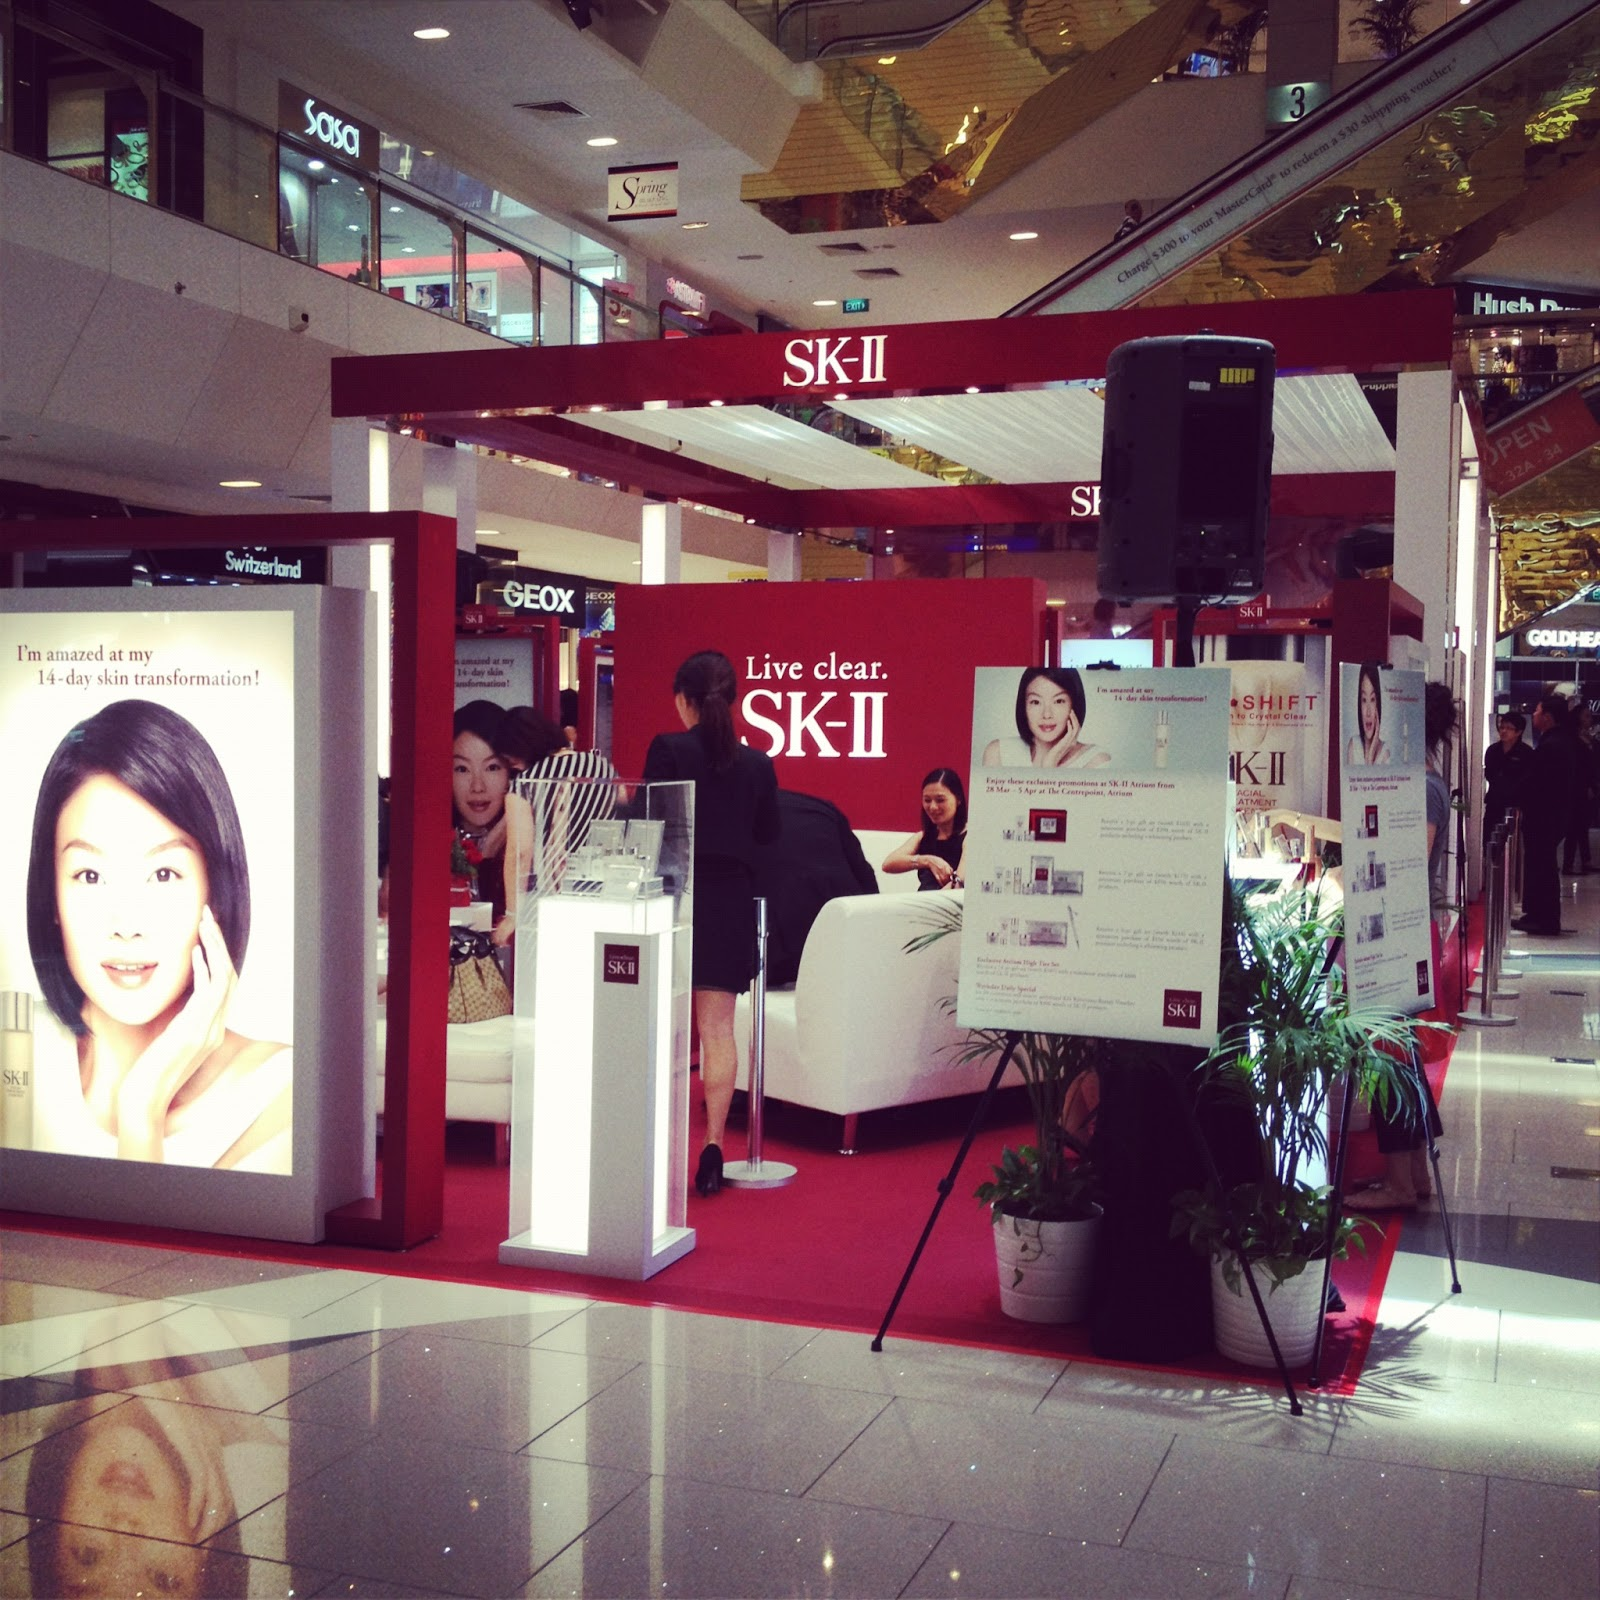 Lee Yeon Hee Promotes SK-II in Singapore, Shares Tips on